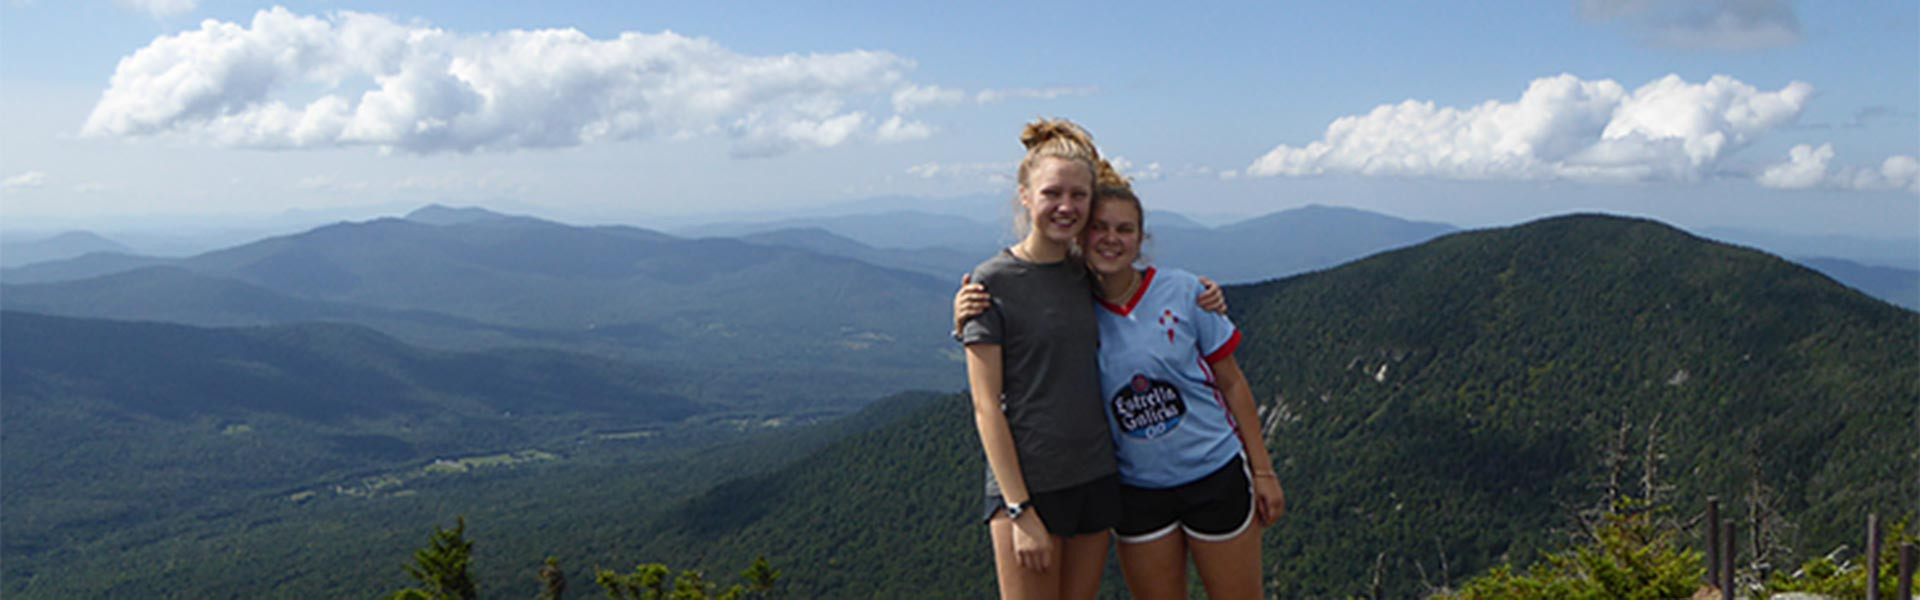 2 girls smiling with a mountain background Vermont Academy